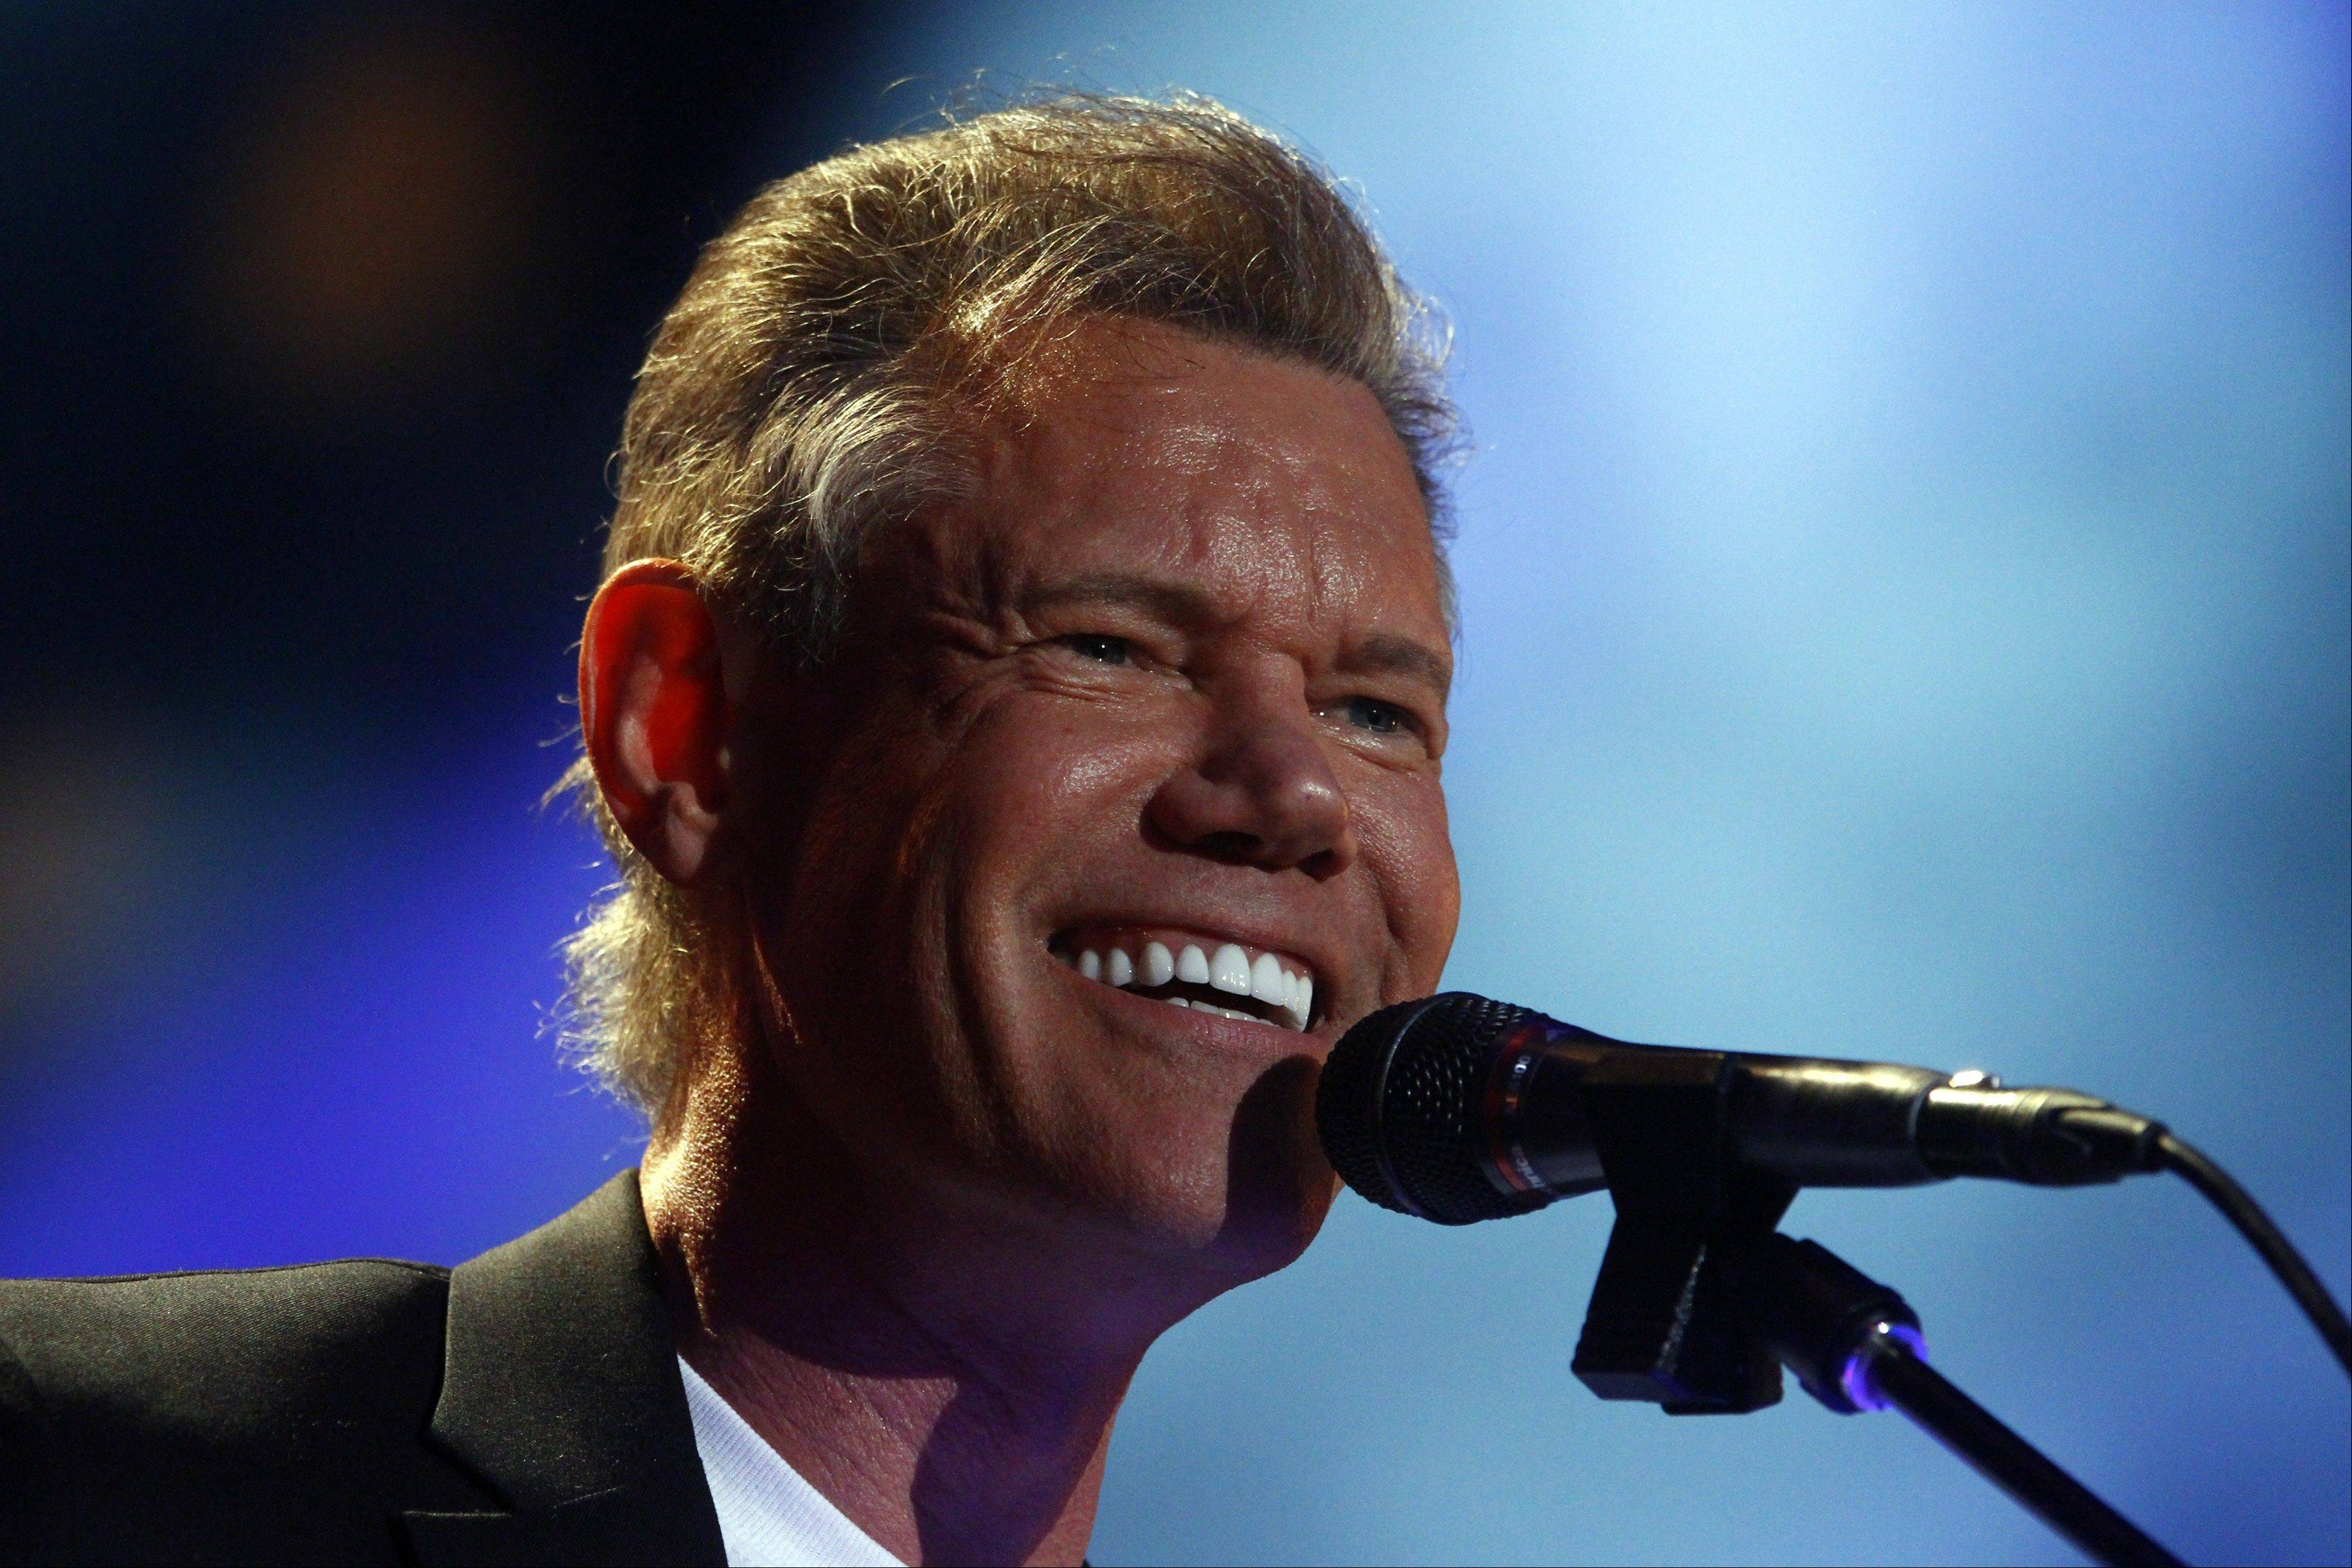 Randy Travis� publicist said Wednesday the 54-year-old Travis is in surgery after suffering a stroke while he was being treated for congestive heart failure because of a viral illness.